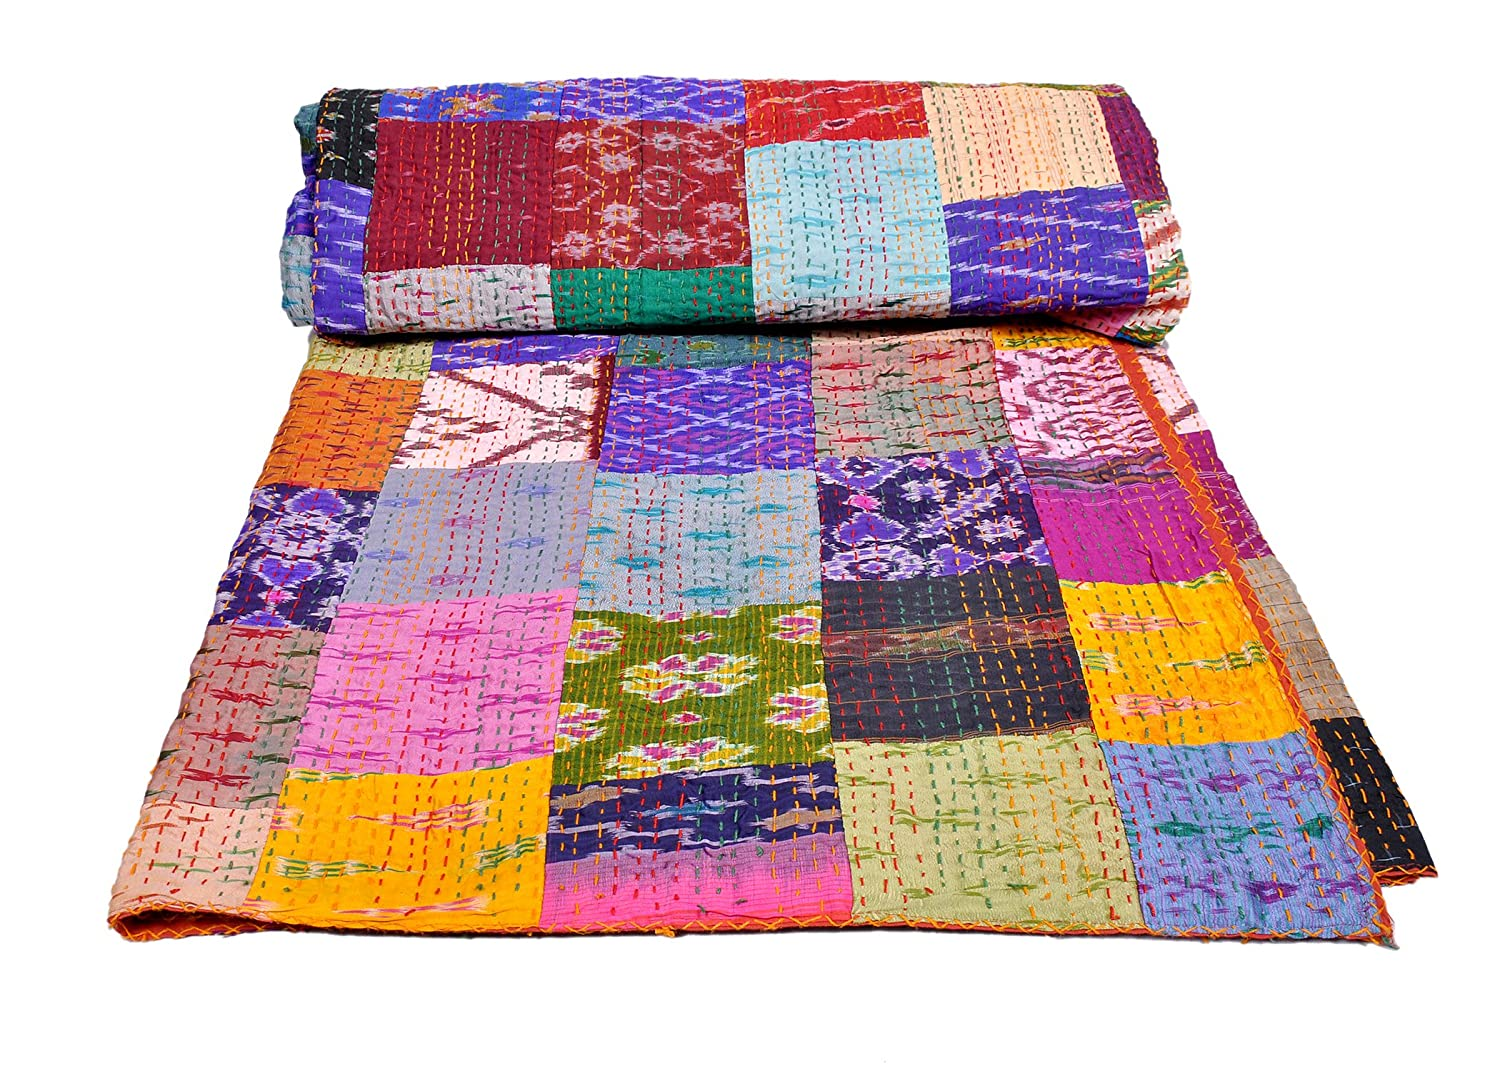 AndExports - Queen Size Multicolored Sari Patchwork Reversible Kantha Quilt, Indian silk sari patola quilt, Recycled Craft, Vintage Kantha Bedspread, Indian Handmade Gudri Bedspread, Unique Piece of Handmade Art